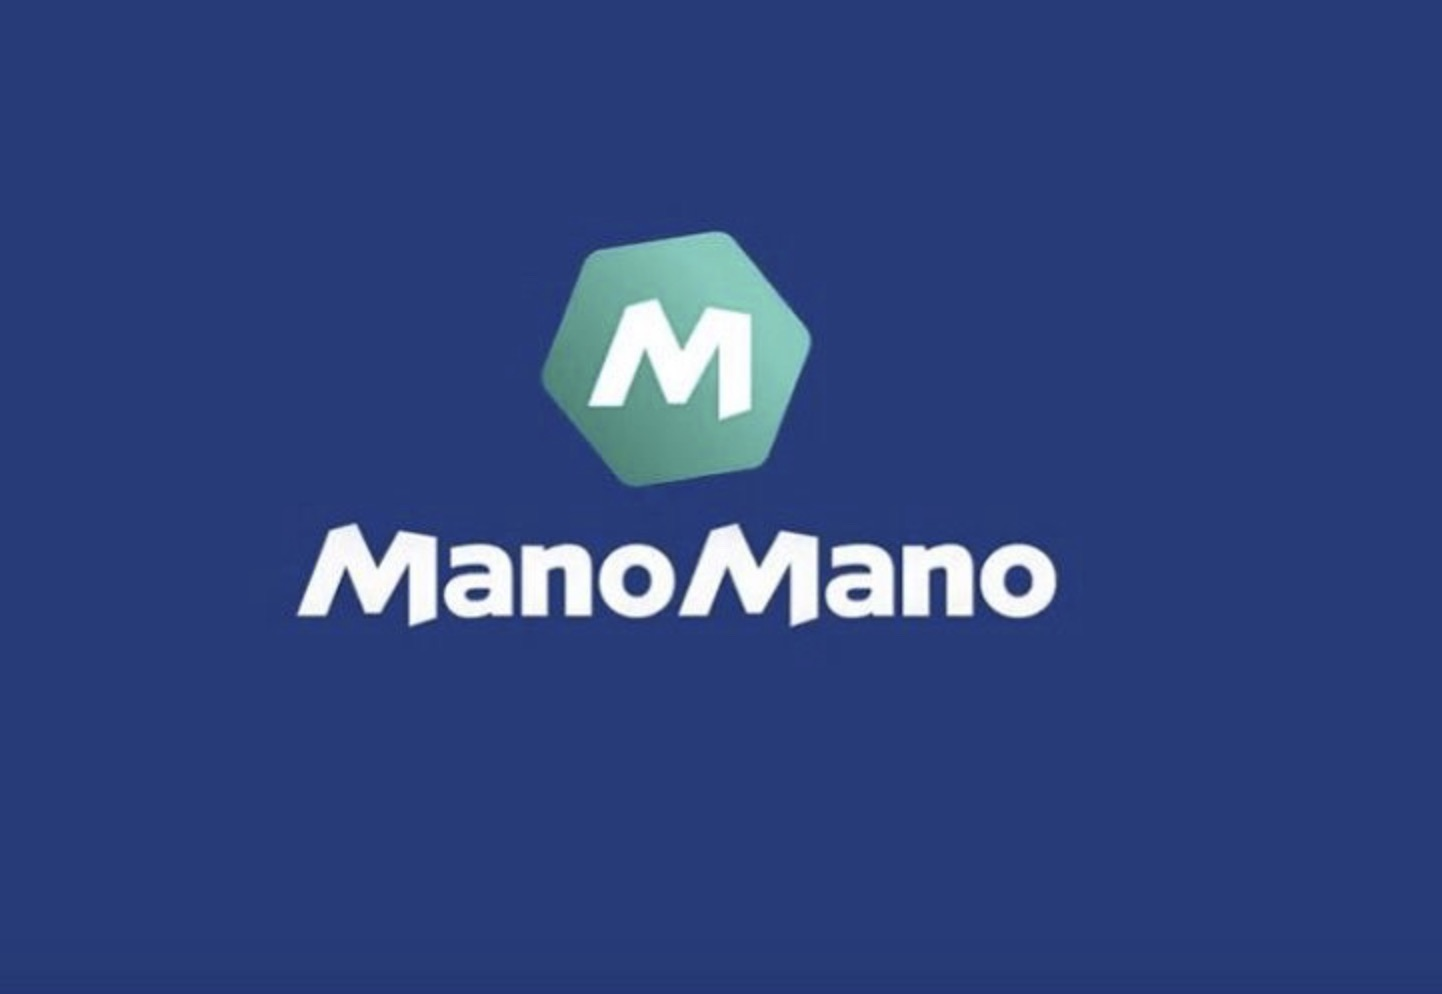 ManoMano raises €110m in funding, as it sets its sights on €1bn turnover